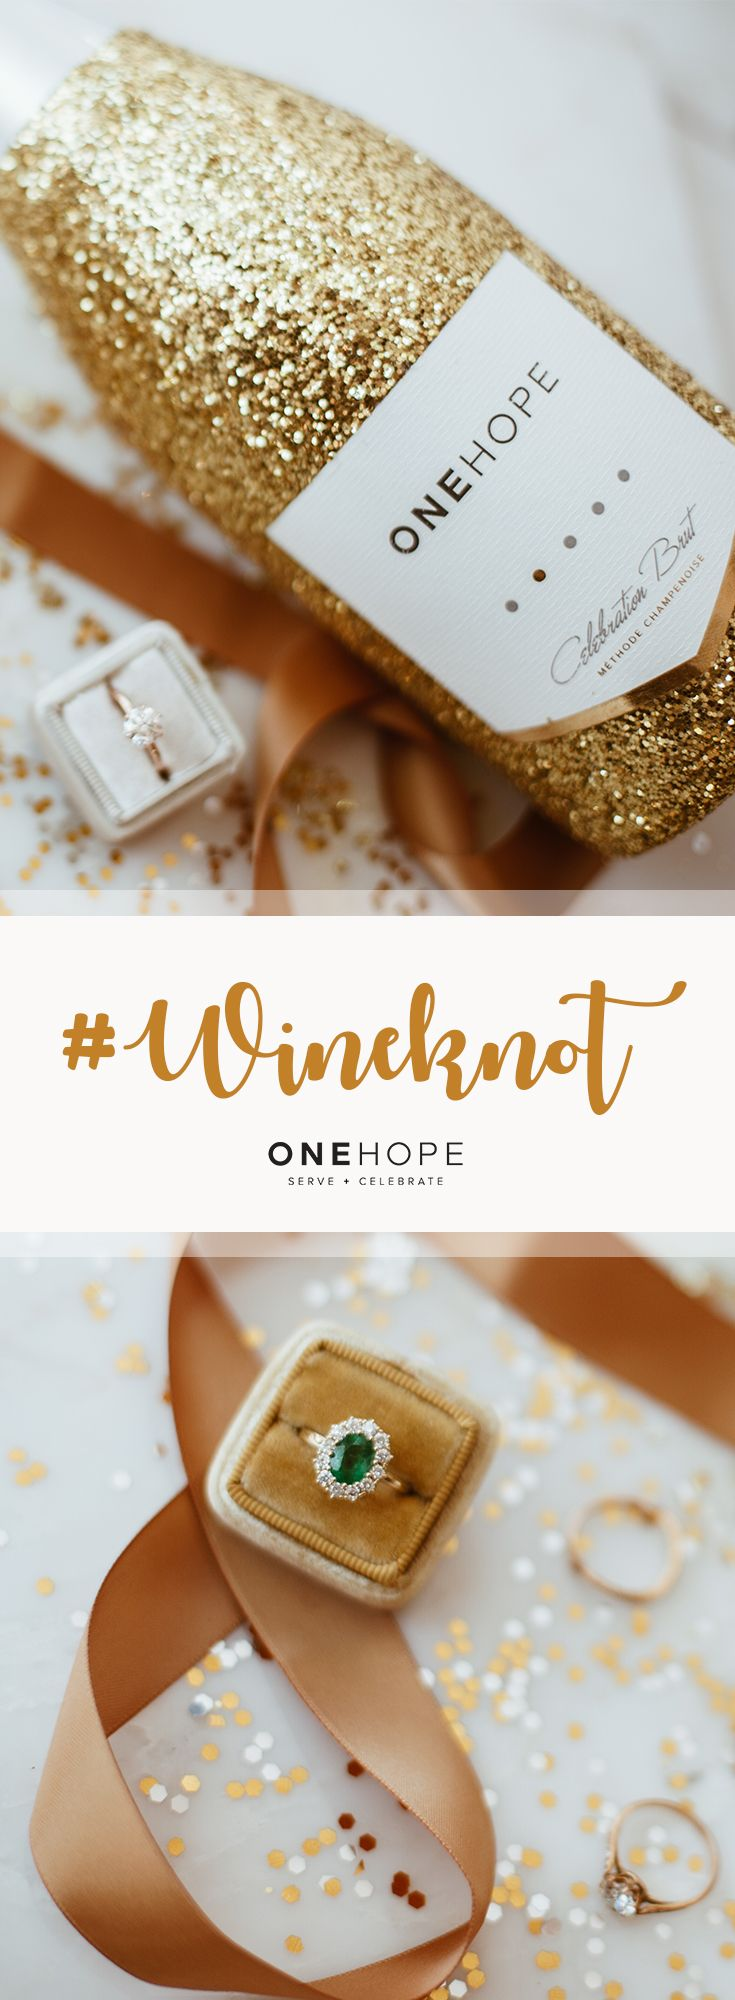 Give love and inspire this wedding season. Every bottle of ONEHOPE ...